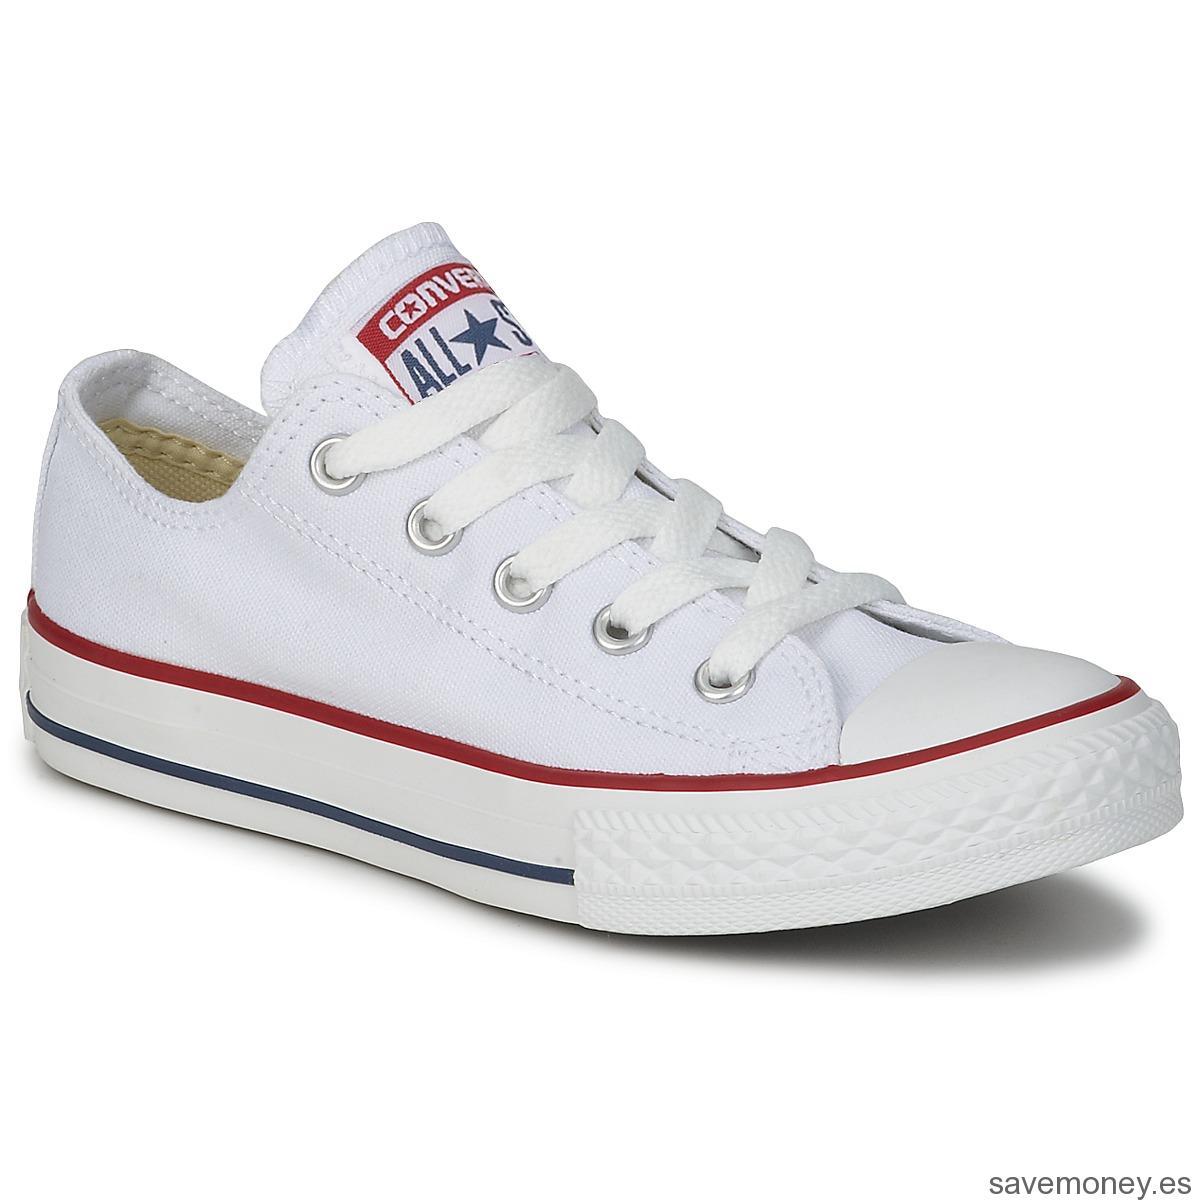 0e5902928 Zapatillas de lona unisex Converse Chuck Taylor All Star Core Ox ...